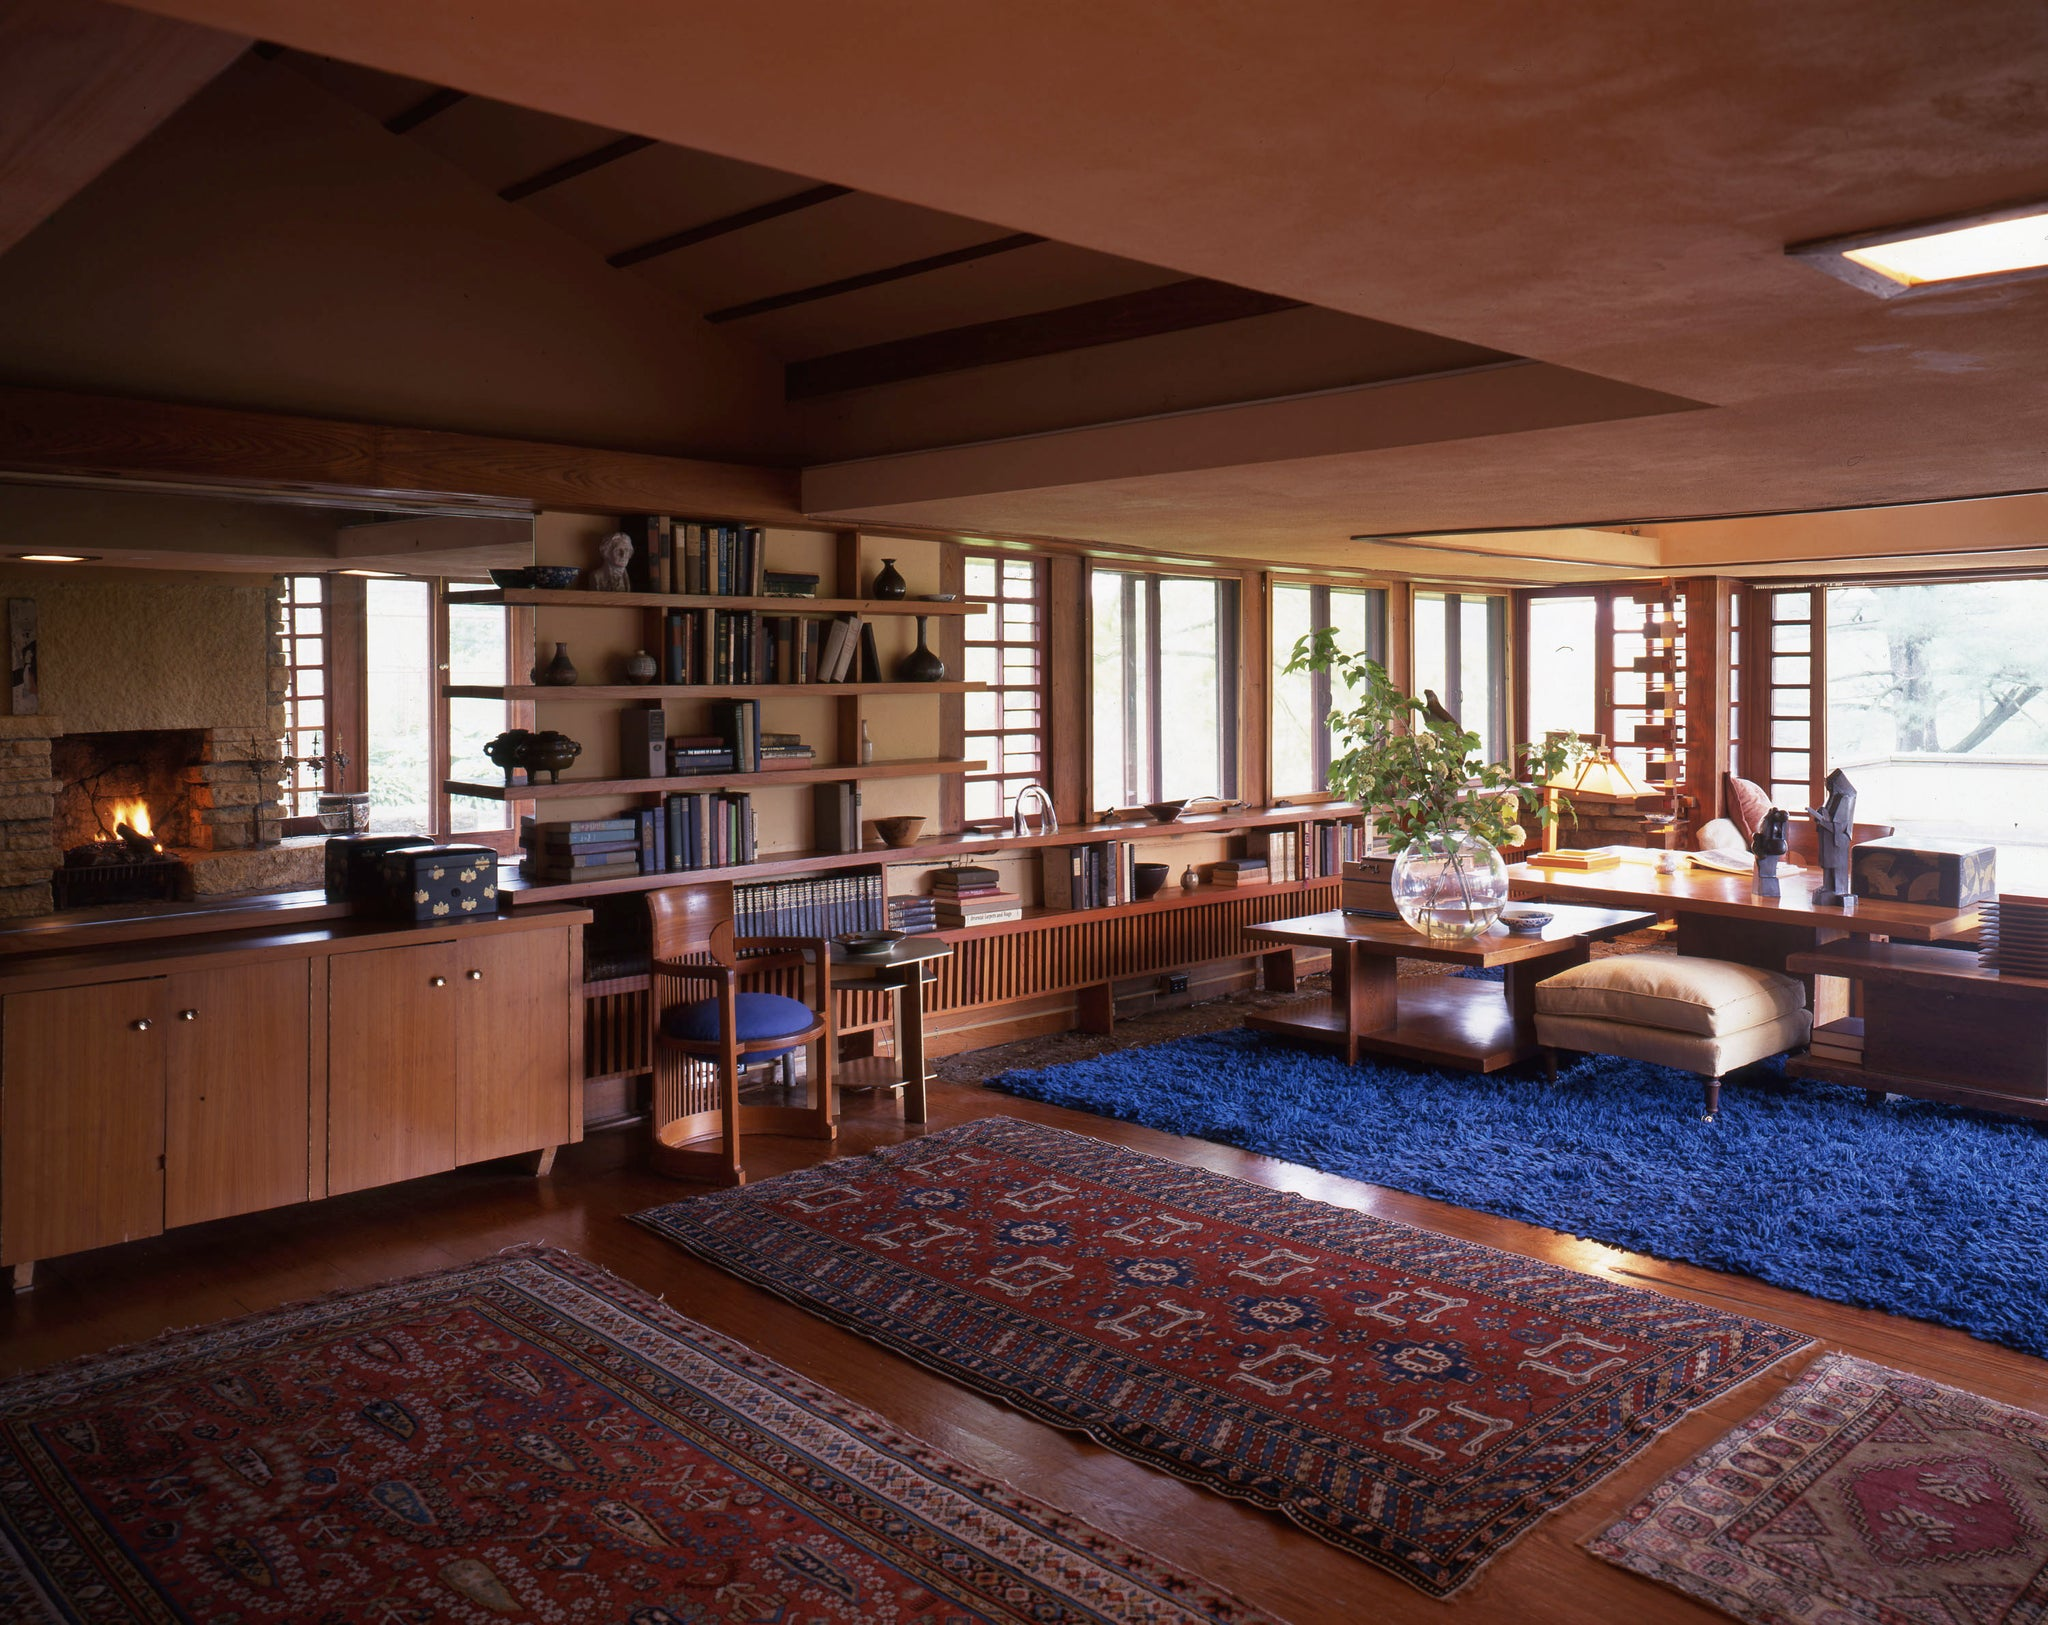 Frank Lloyd Wright's bedroom inside Taliesin West